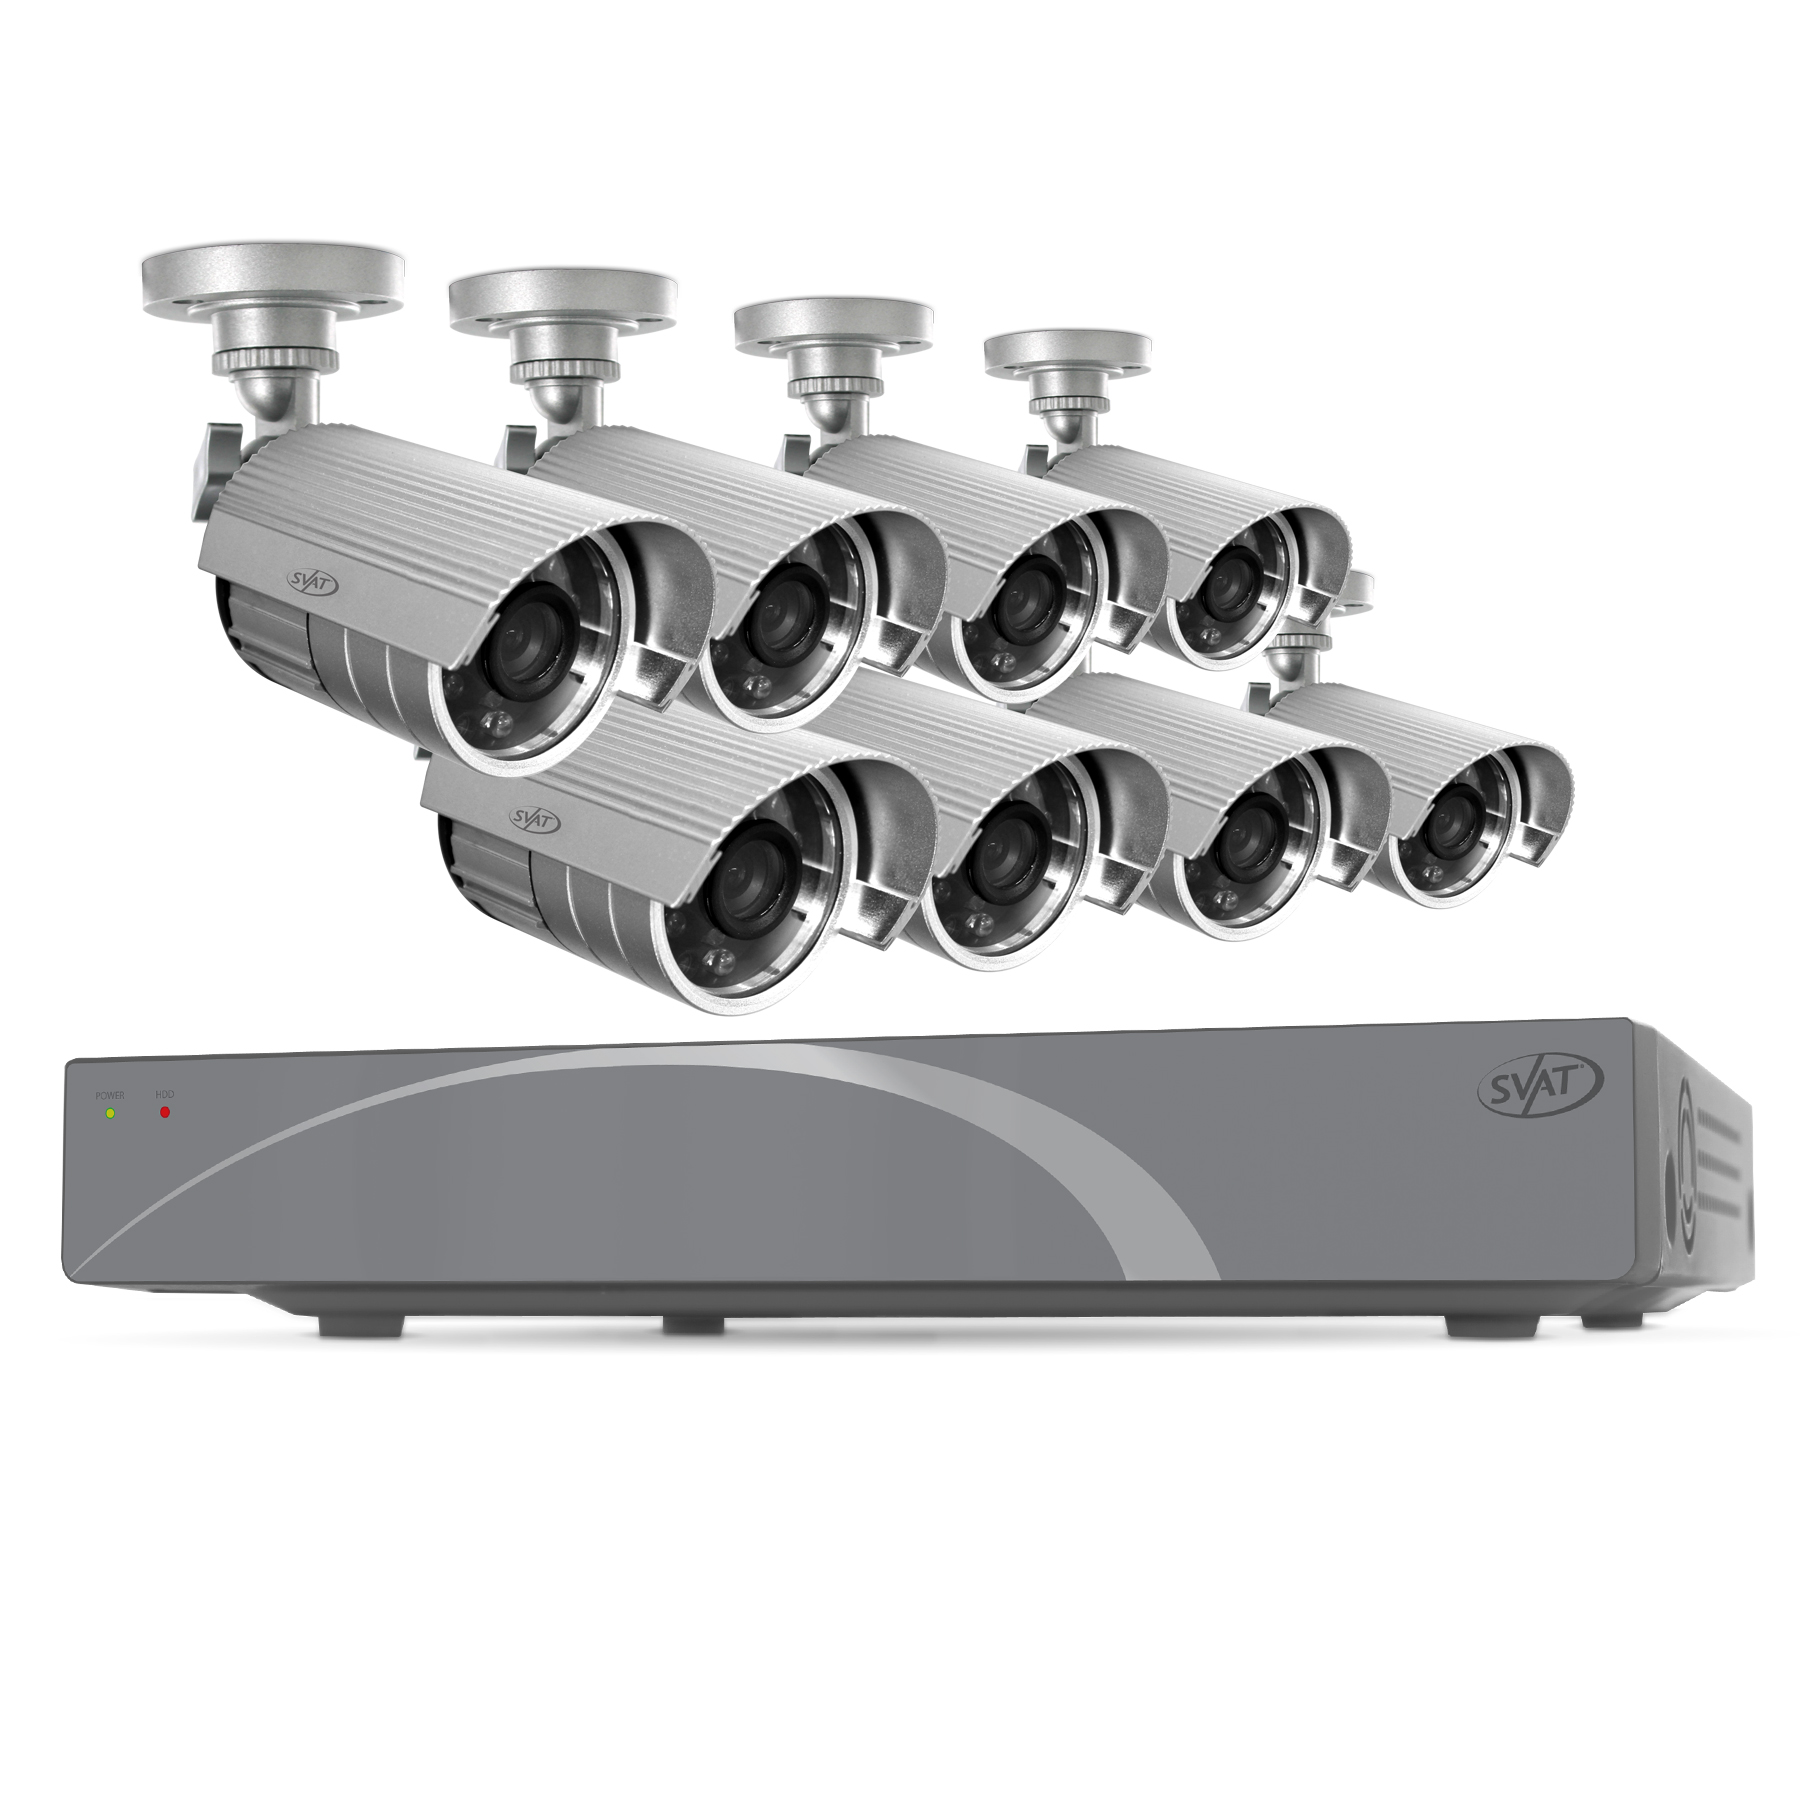 11029 - SVAT 8CH Smart Security DVR with 8 Hi-Res 75ft Cameras 500 GB HDD - 11029